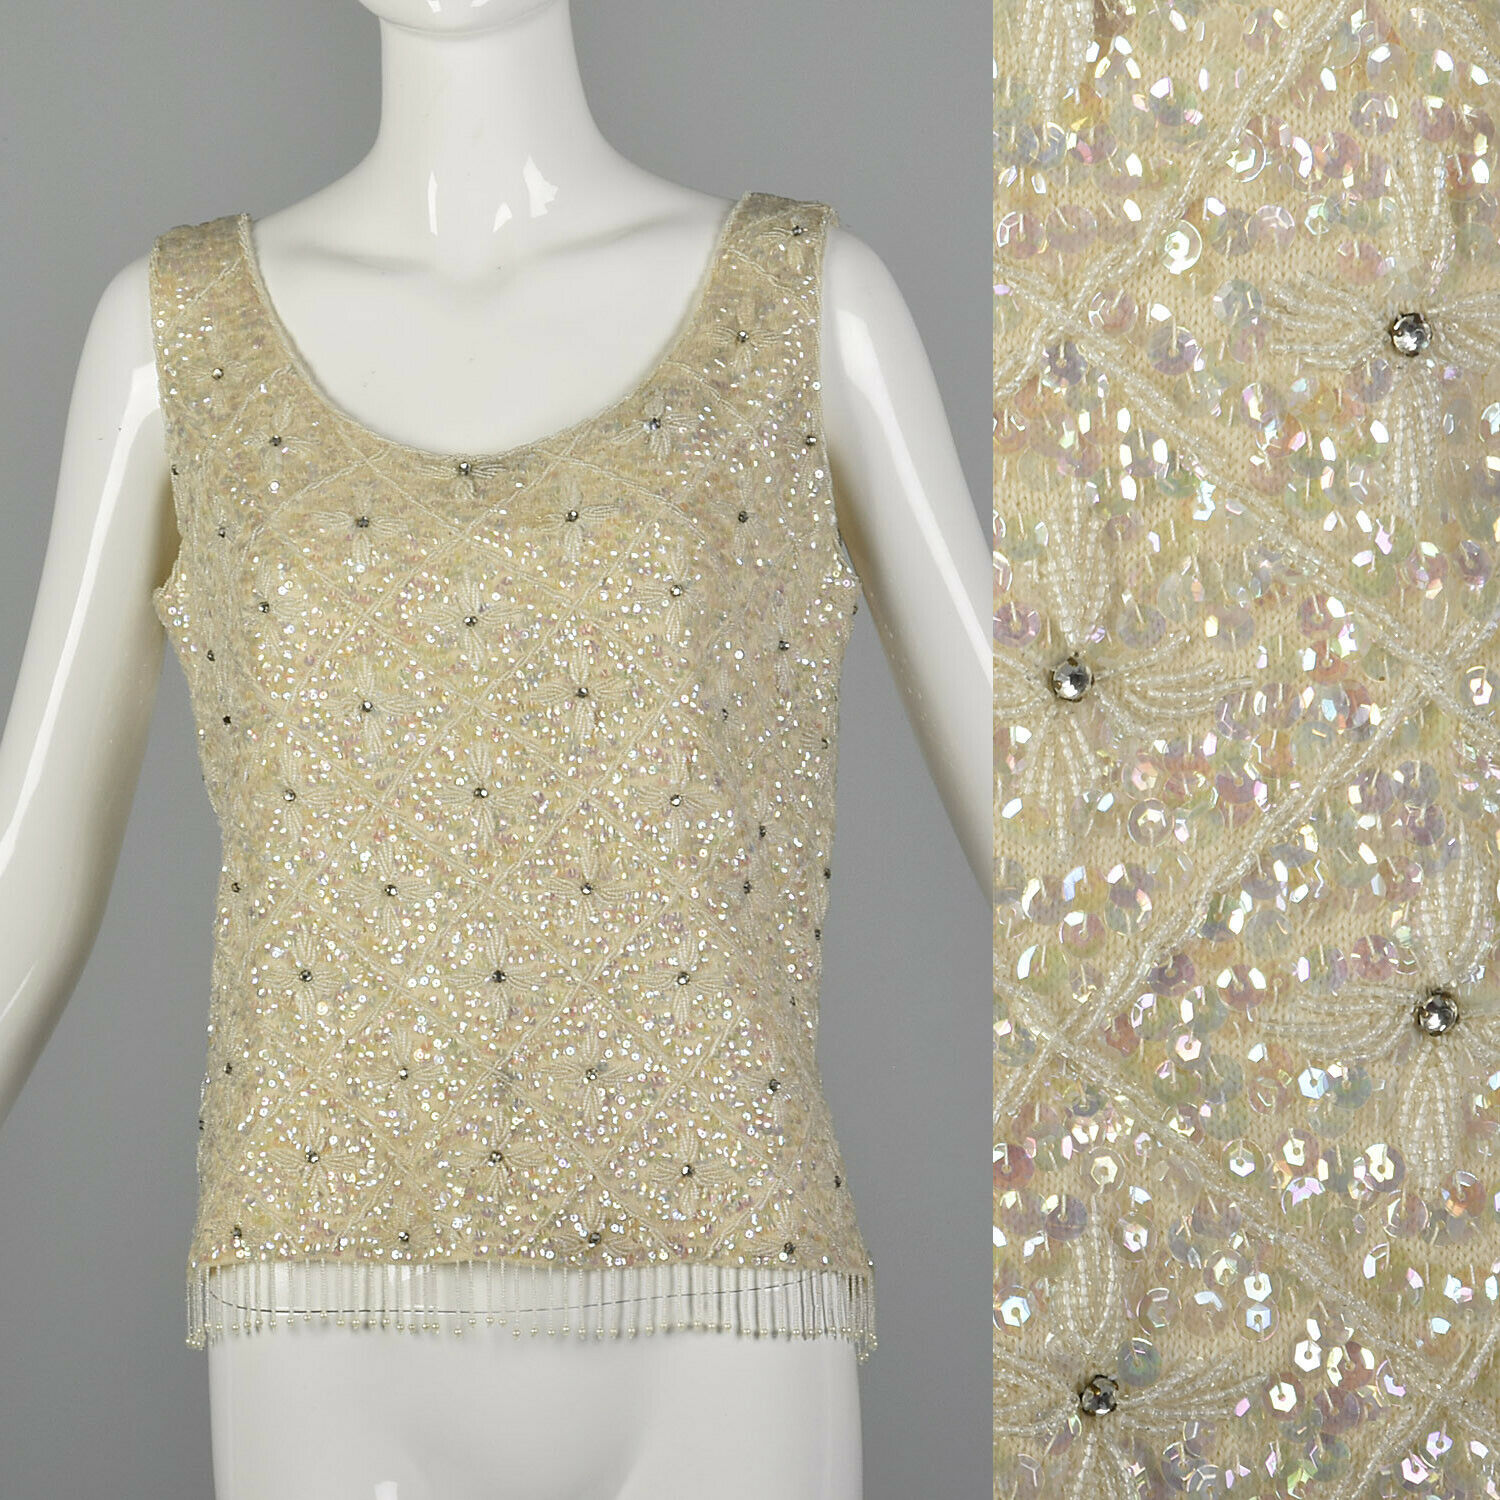 Medium 1960s Iridescent Sequin Blouse Vintage Sleeveless VTG 60s Wedding Top